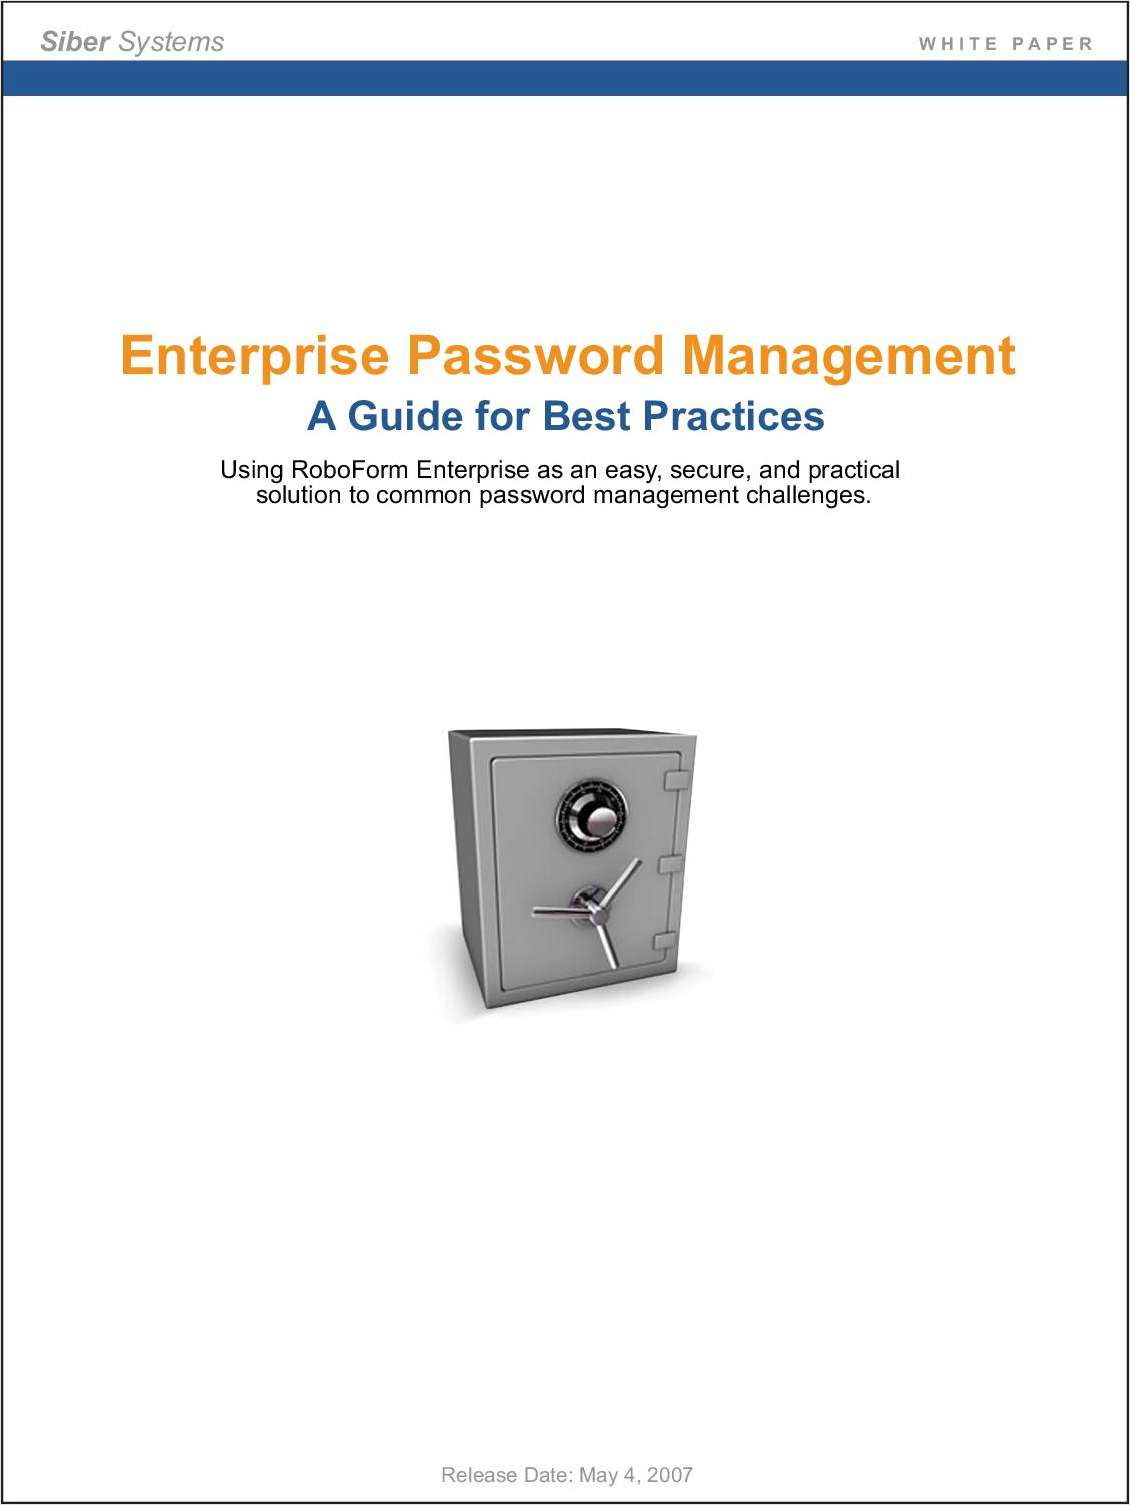 Enterprise Password Management - A Guide for Best Practices